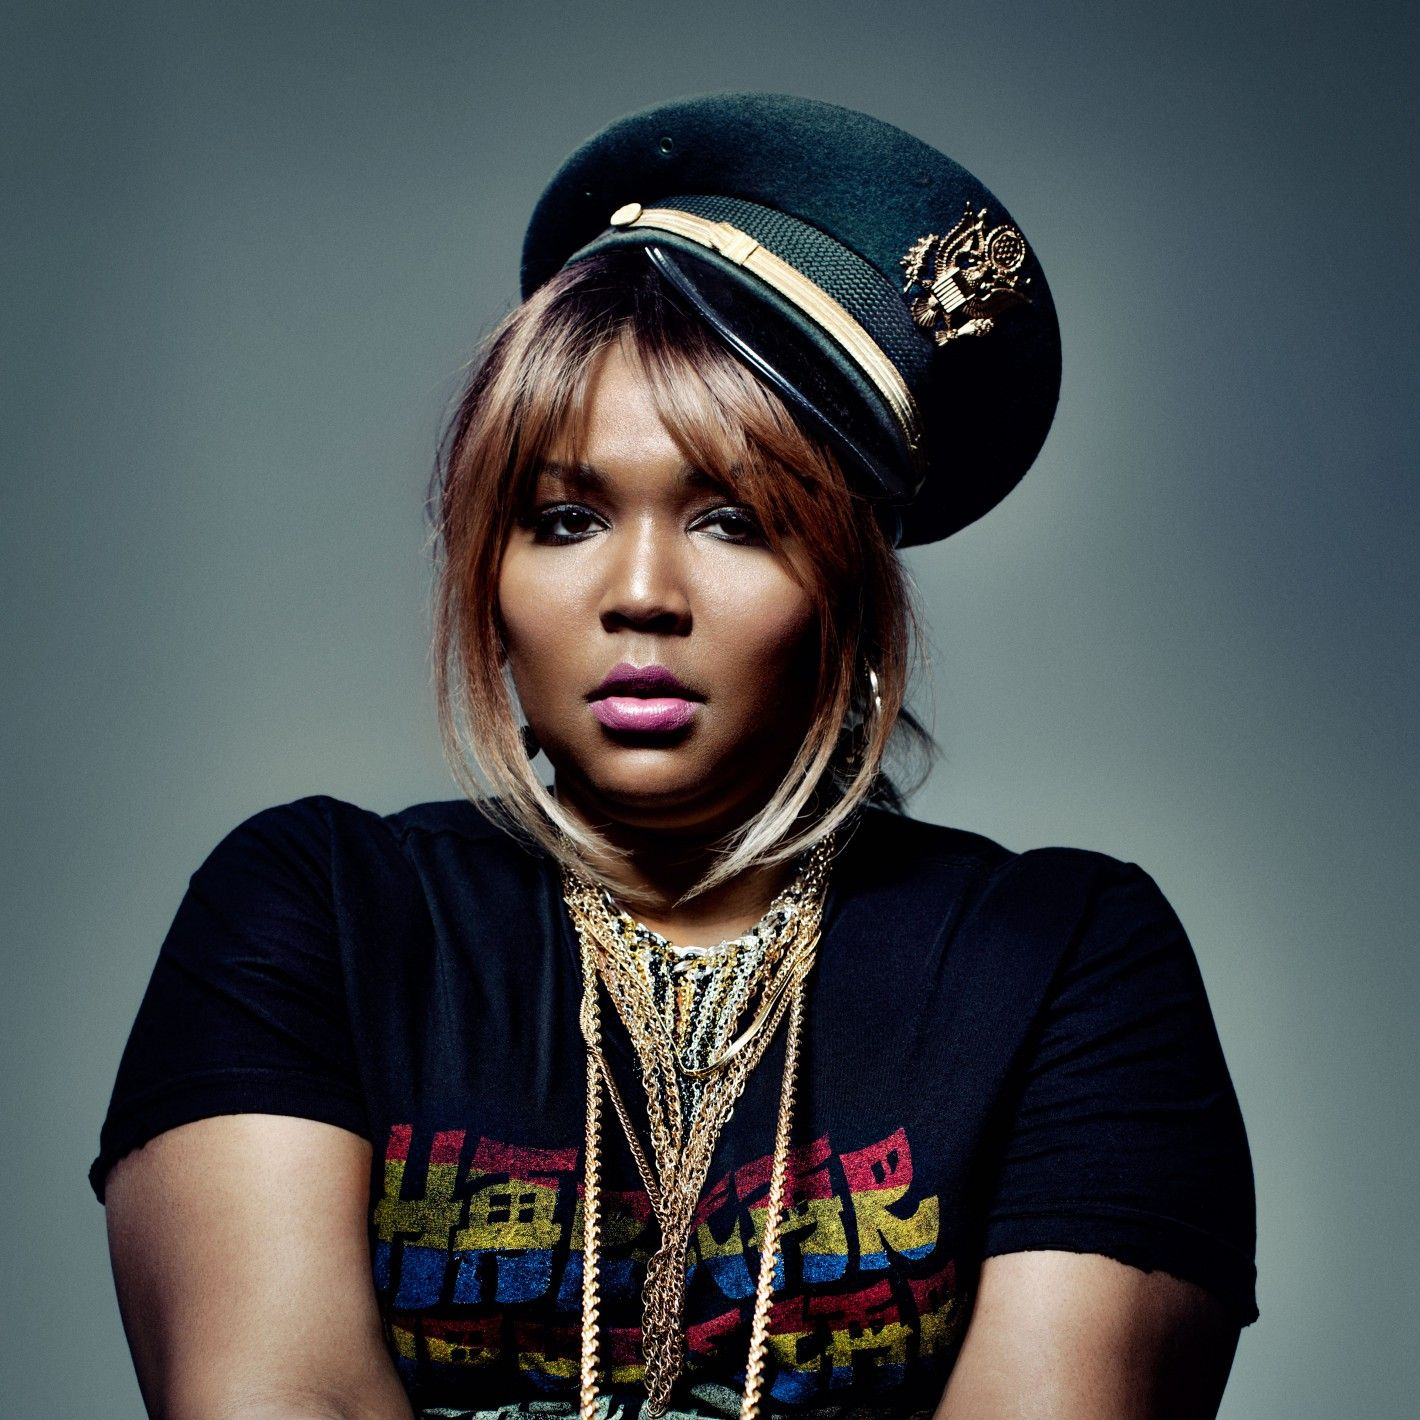 Lizzo totally gross national product girls run the